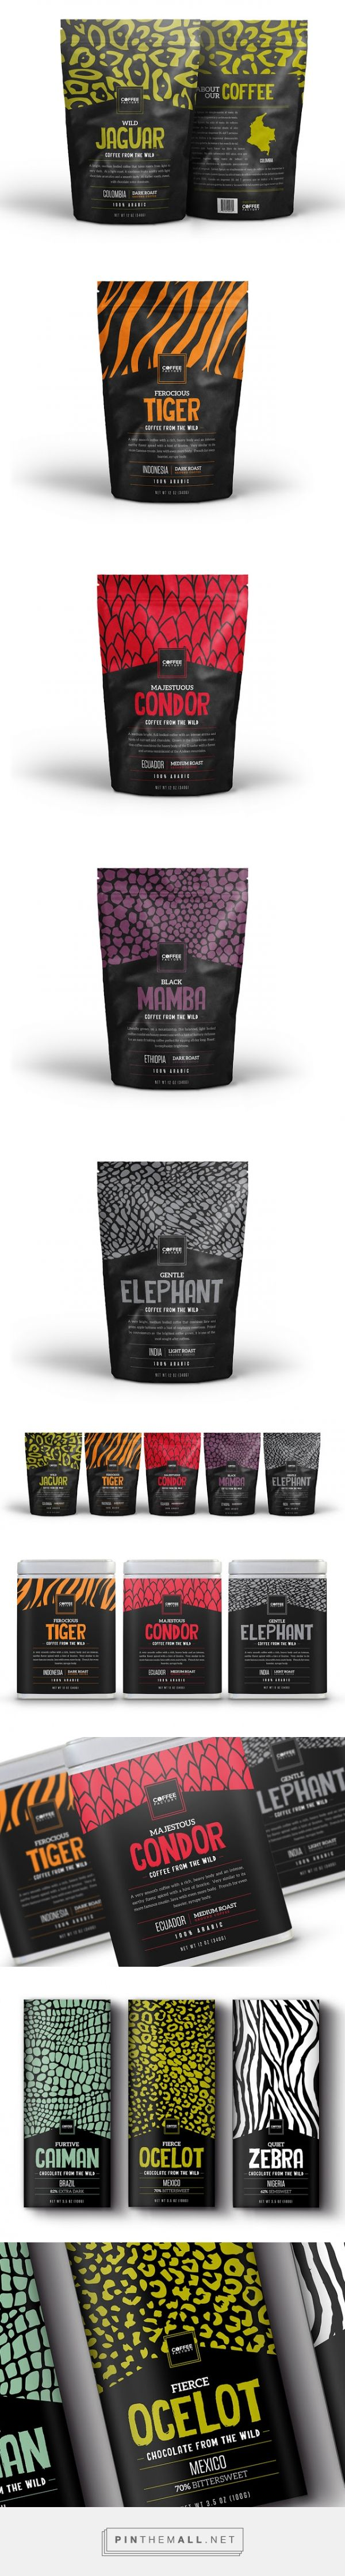 Coffee From The Wild (Concept)  Packaging of the World - Creative Package Design Gallery - http://www.packagingoftheworld.com/2015/09/coffee-from-wild-concept.html